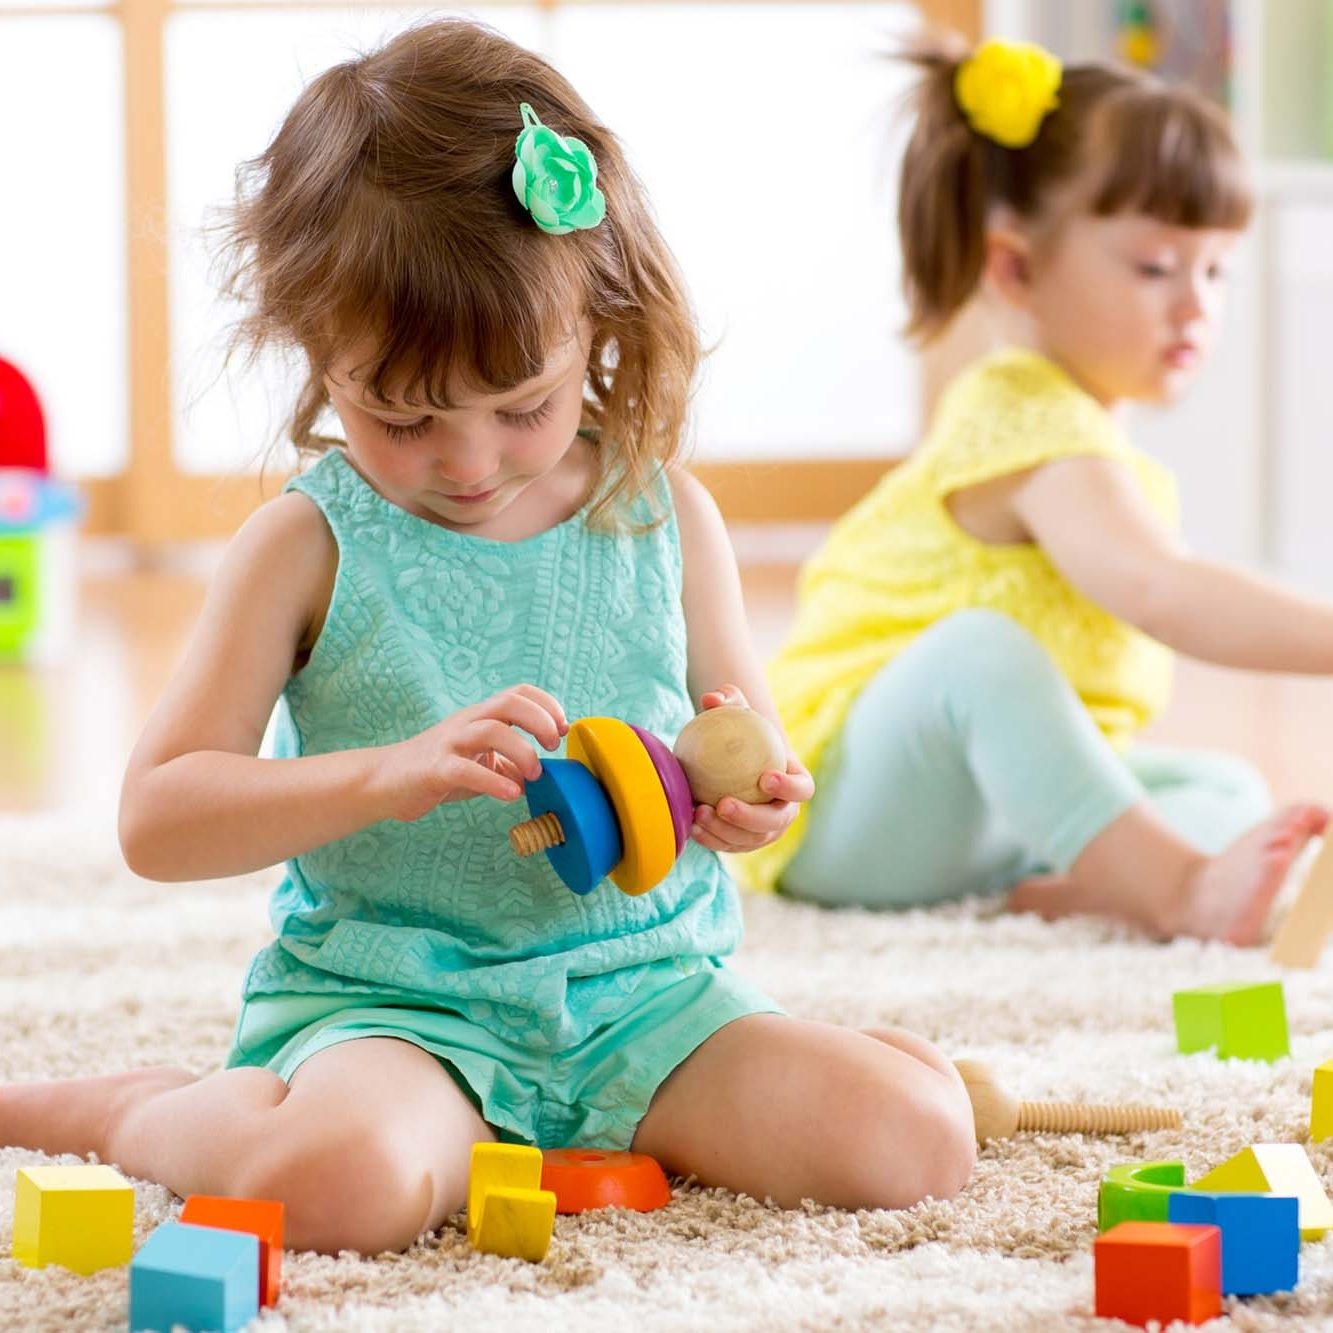 Children preschooler girls play logical toy learning shapes, arithmetic and colors at home or nursery